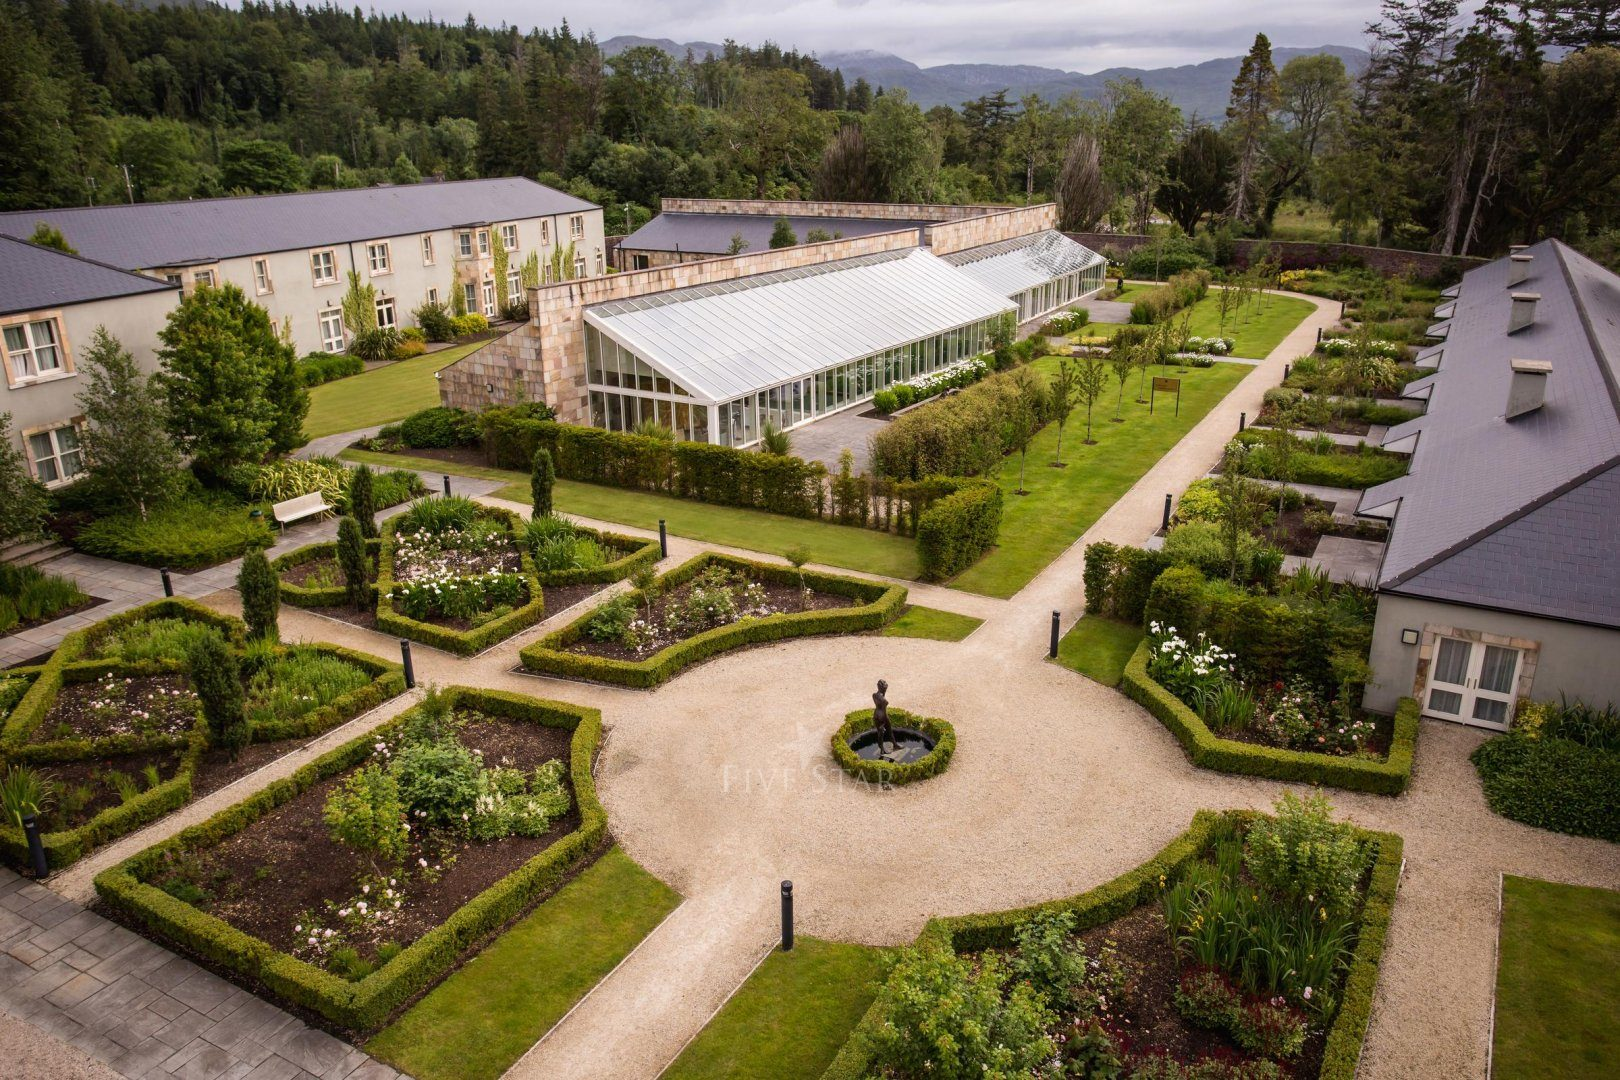 Lough Eske Castle photo 14